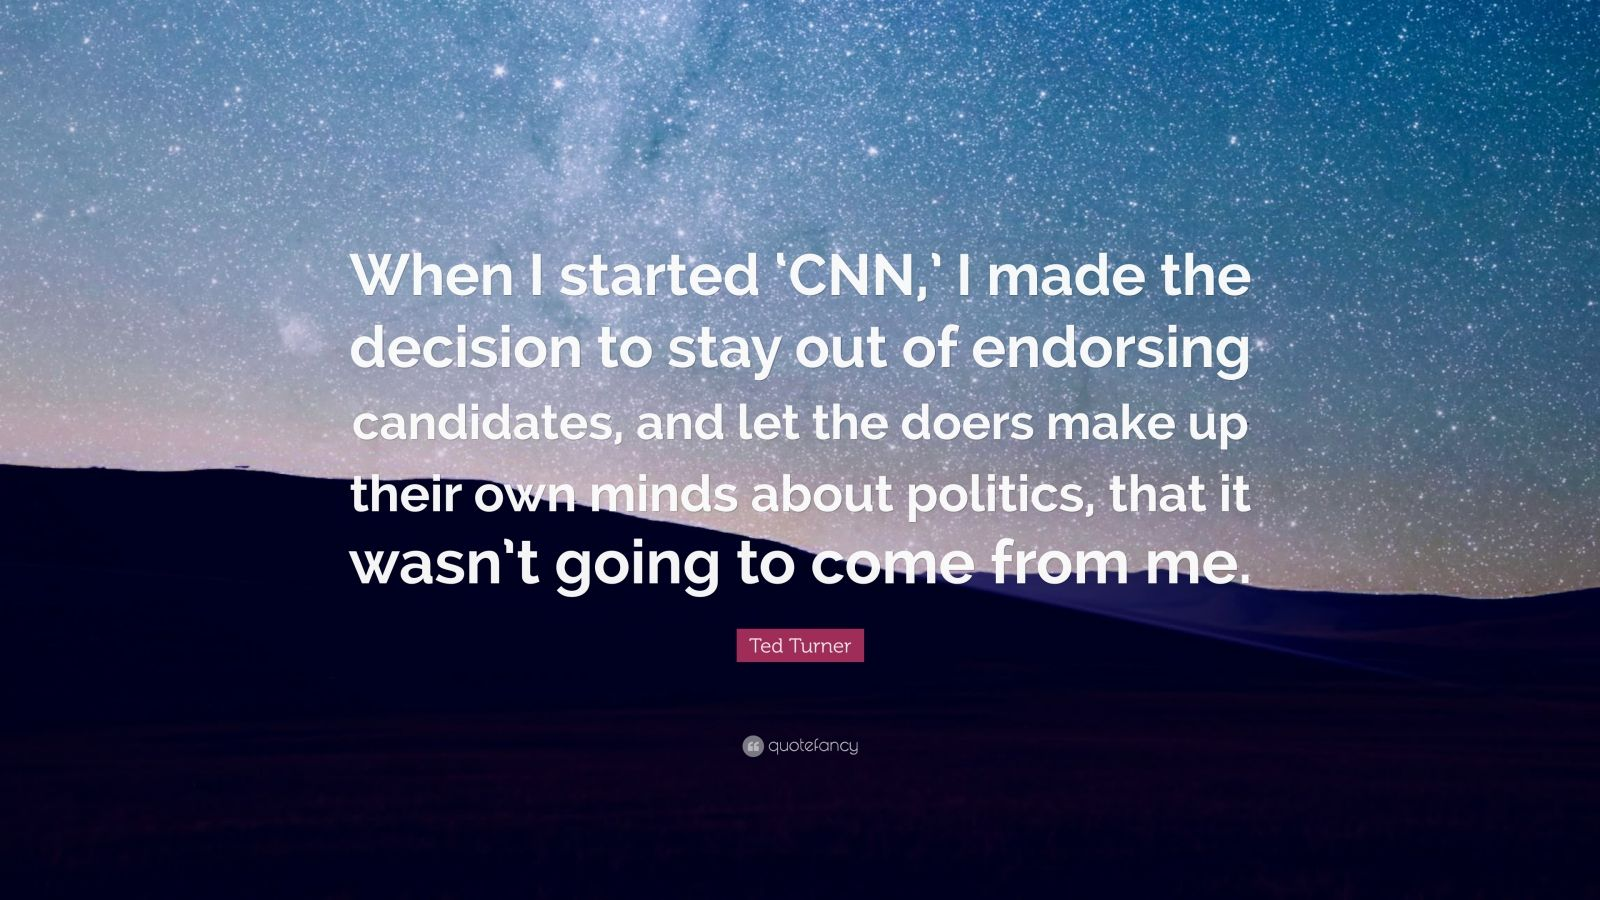 """Ted Turner Quote: """"When I started 'CNN,' I made the decision to stay out of endorsing candidates, and let the doers make up their own minds about politics, that it wasn't going to come from me."""""""